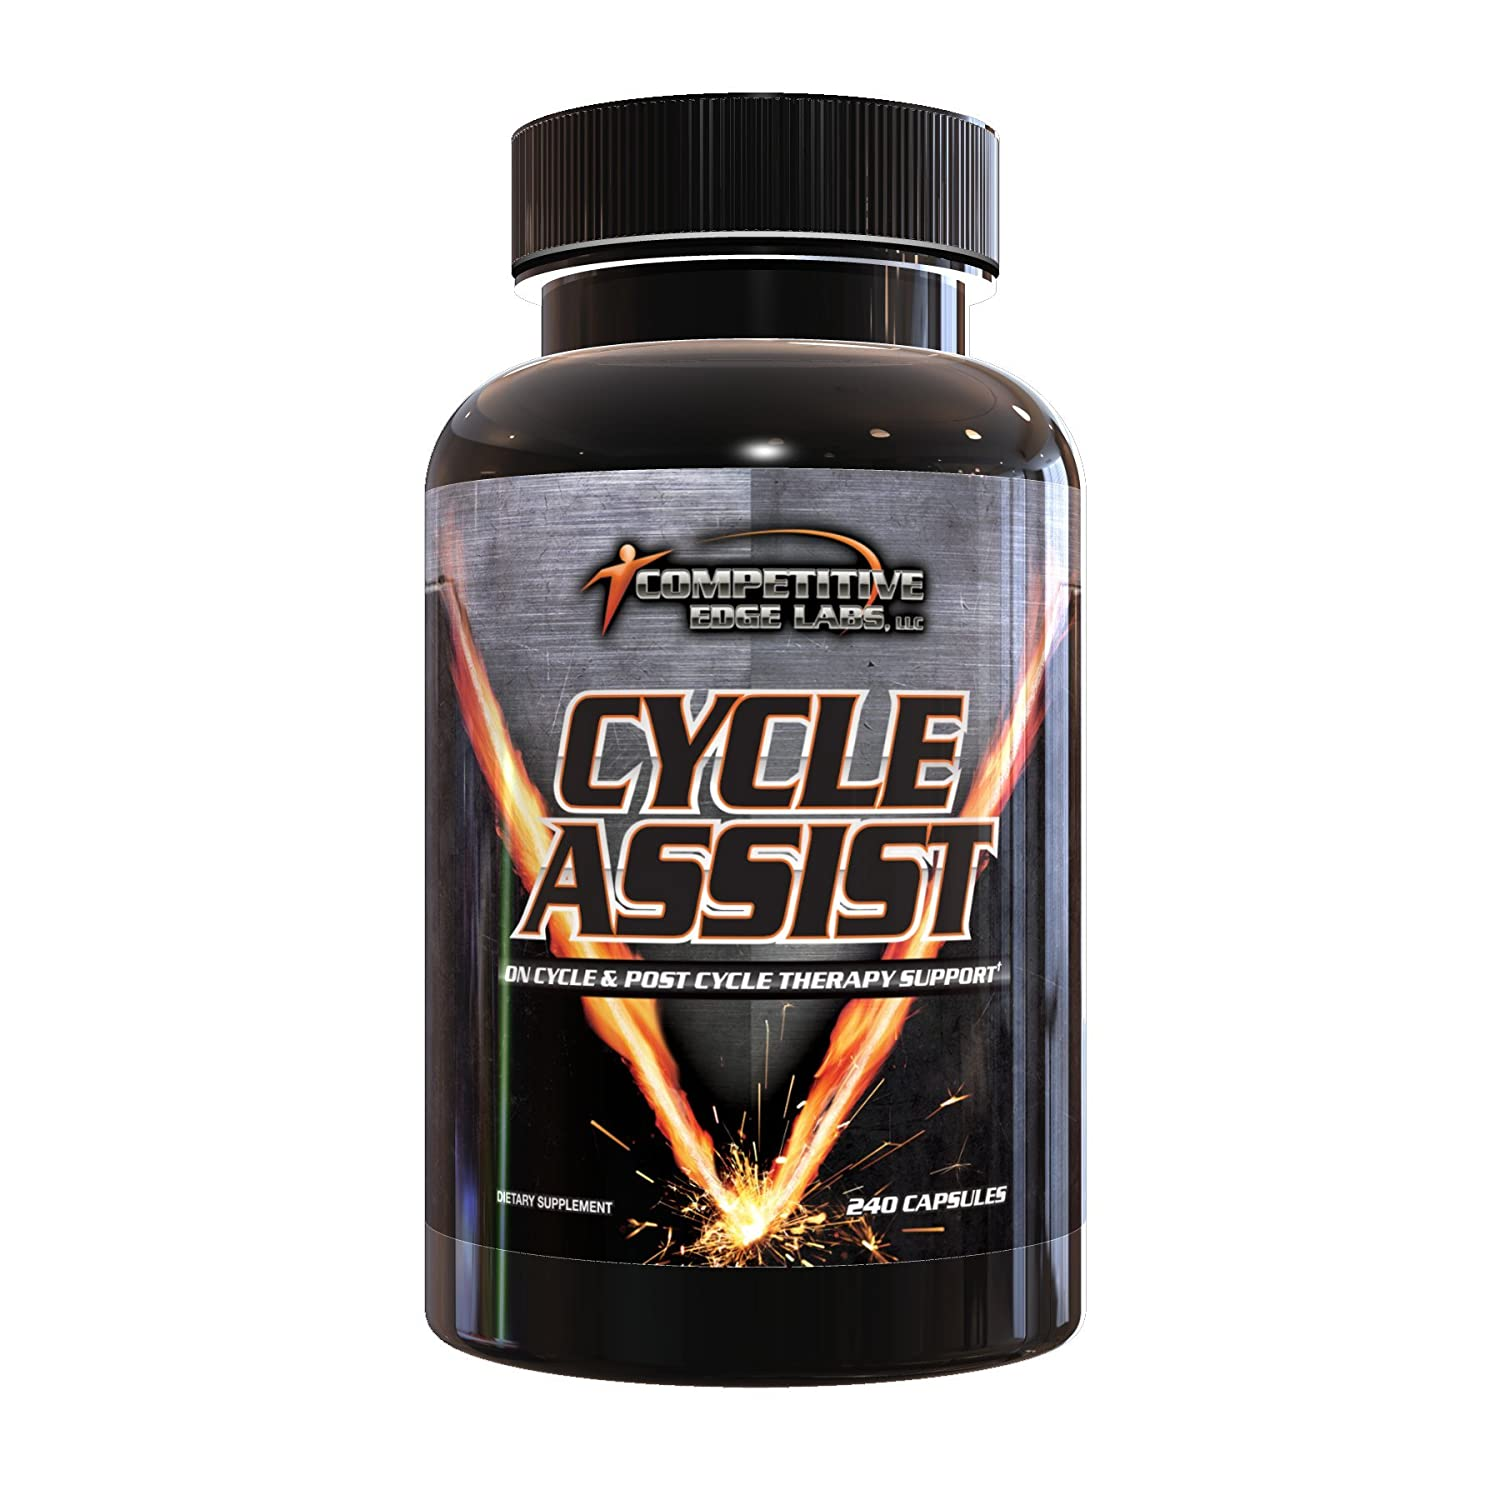 Cycle Assist by CEL All-in-One On Cycle Support with Advanced Liver Assist and Organ Protection. 60 servings. Includes Milk Thistle, Saw Palmetto, and Hawthorne.